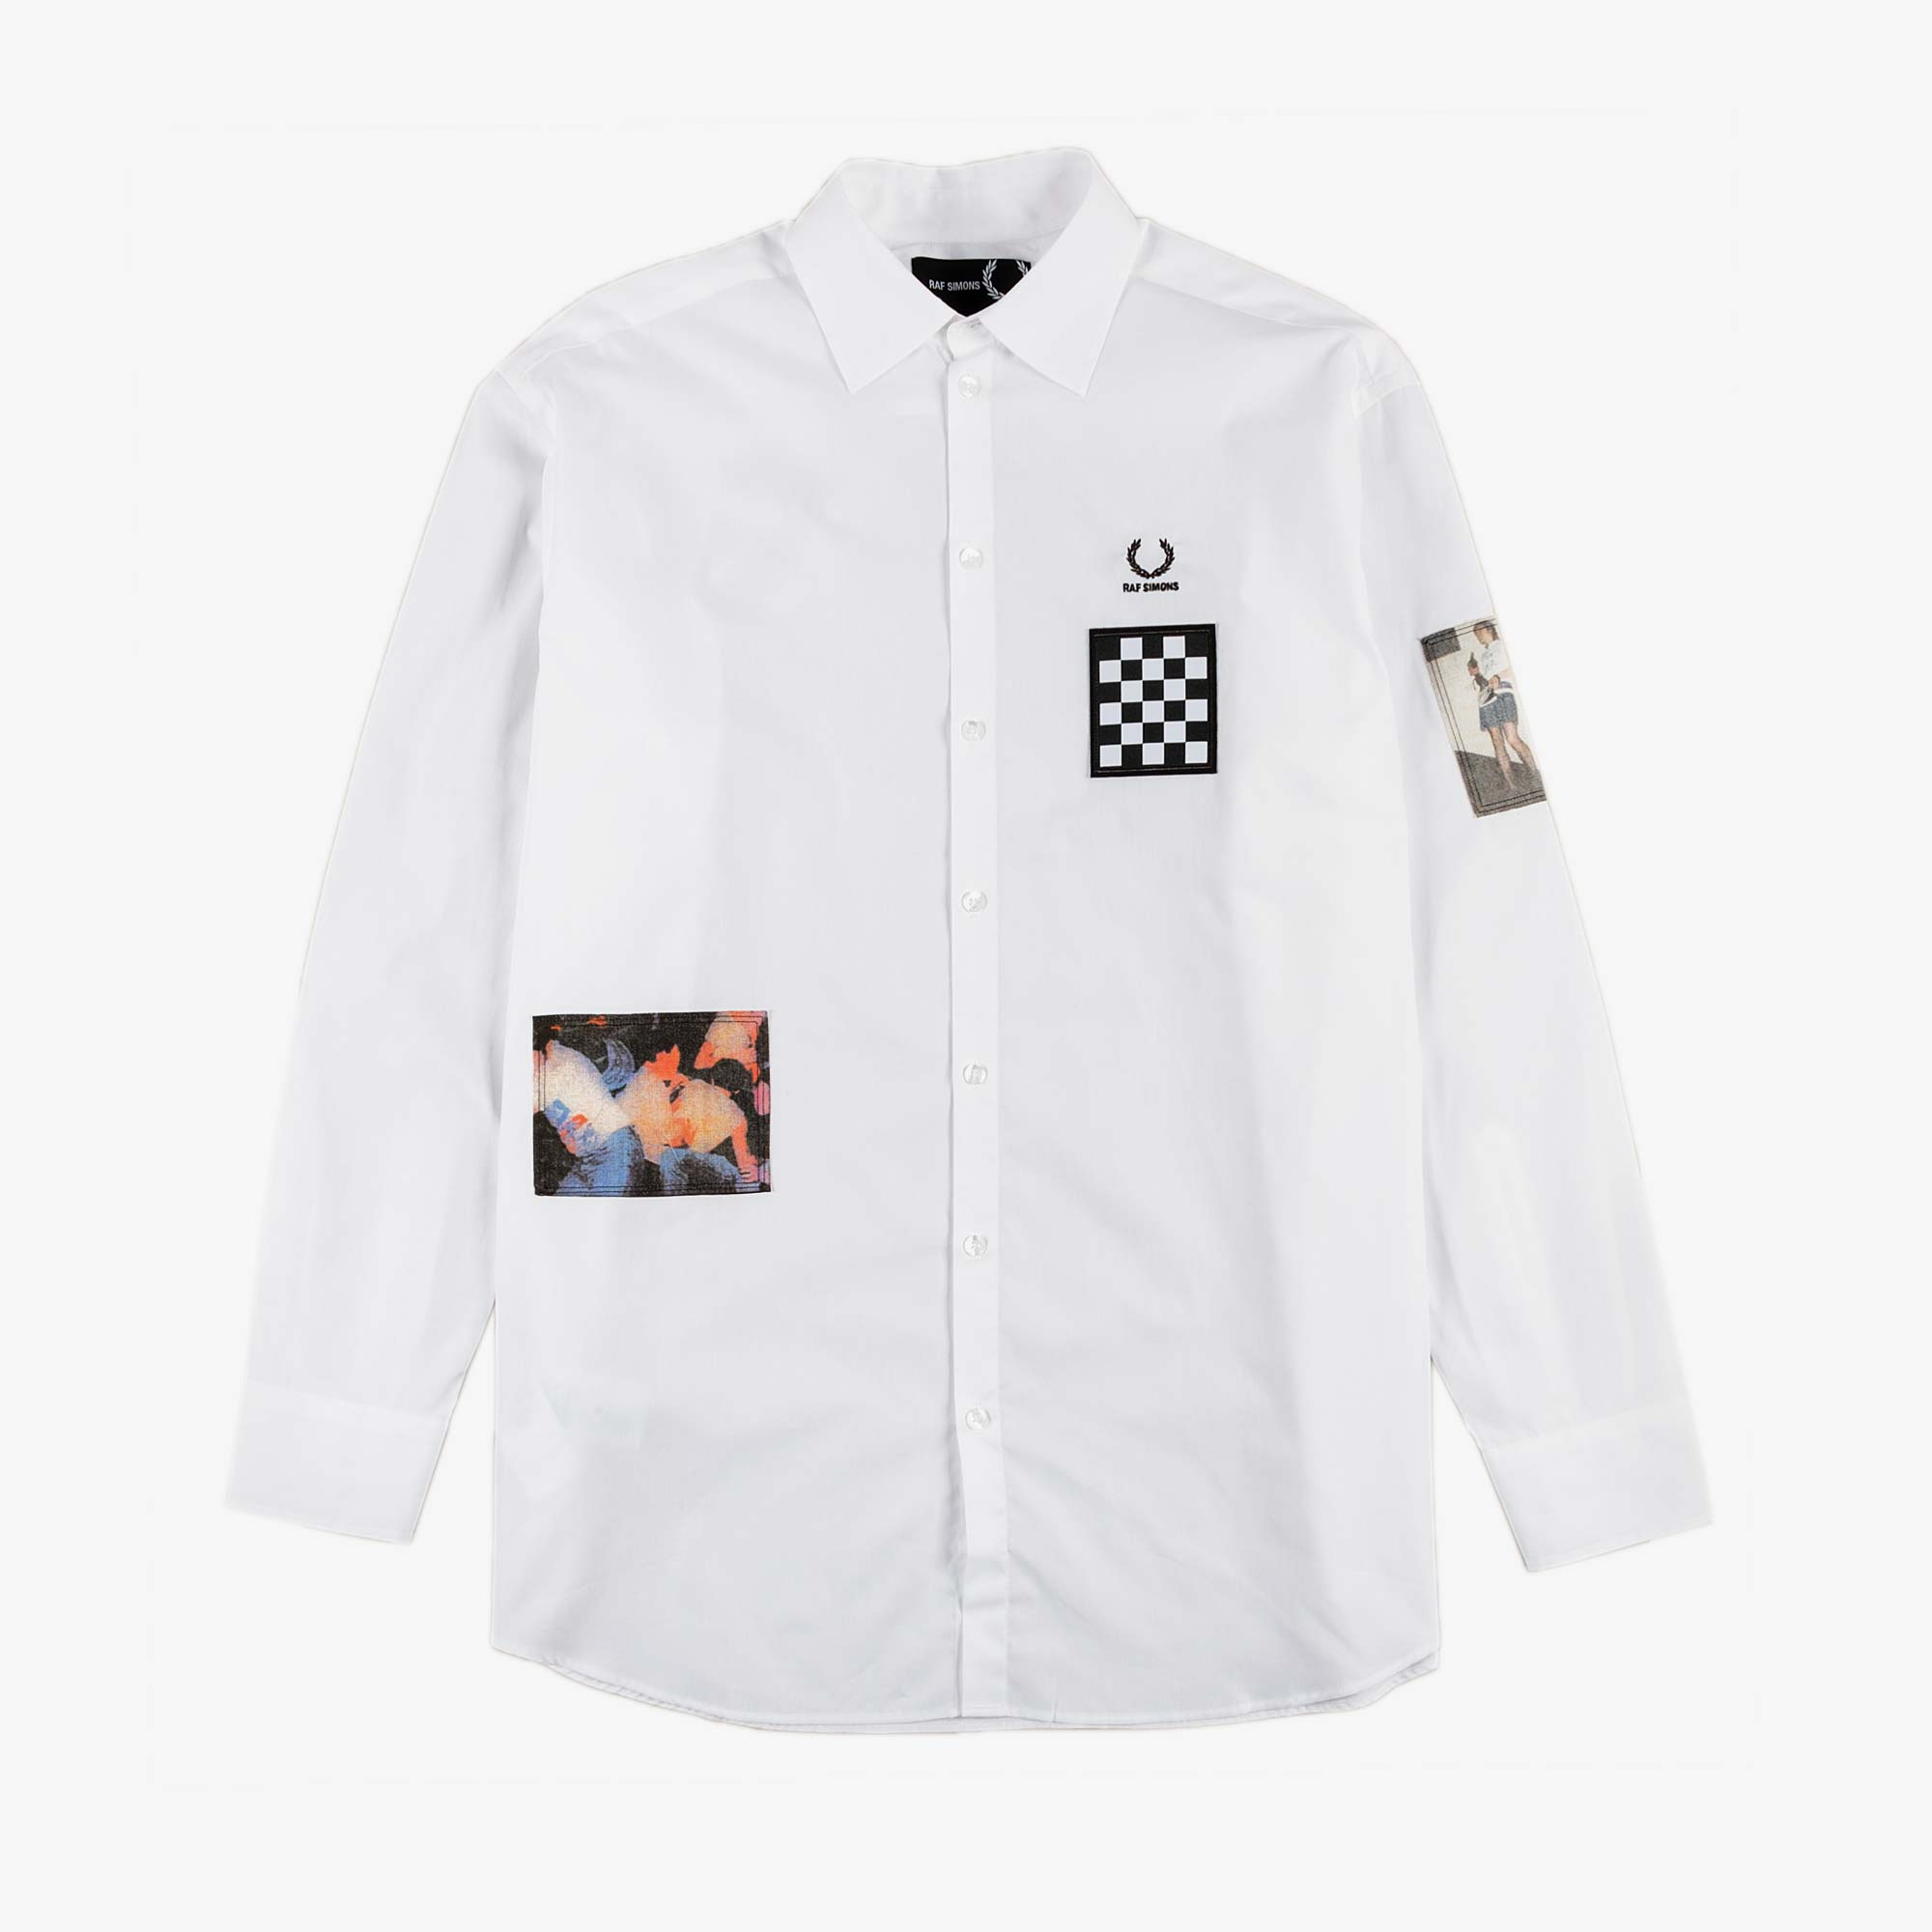 Fred Perry X Raf Simons Oversized Patch LS Shirt - White 1